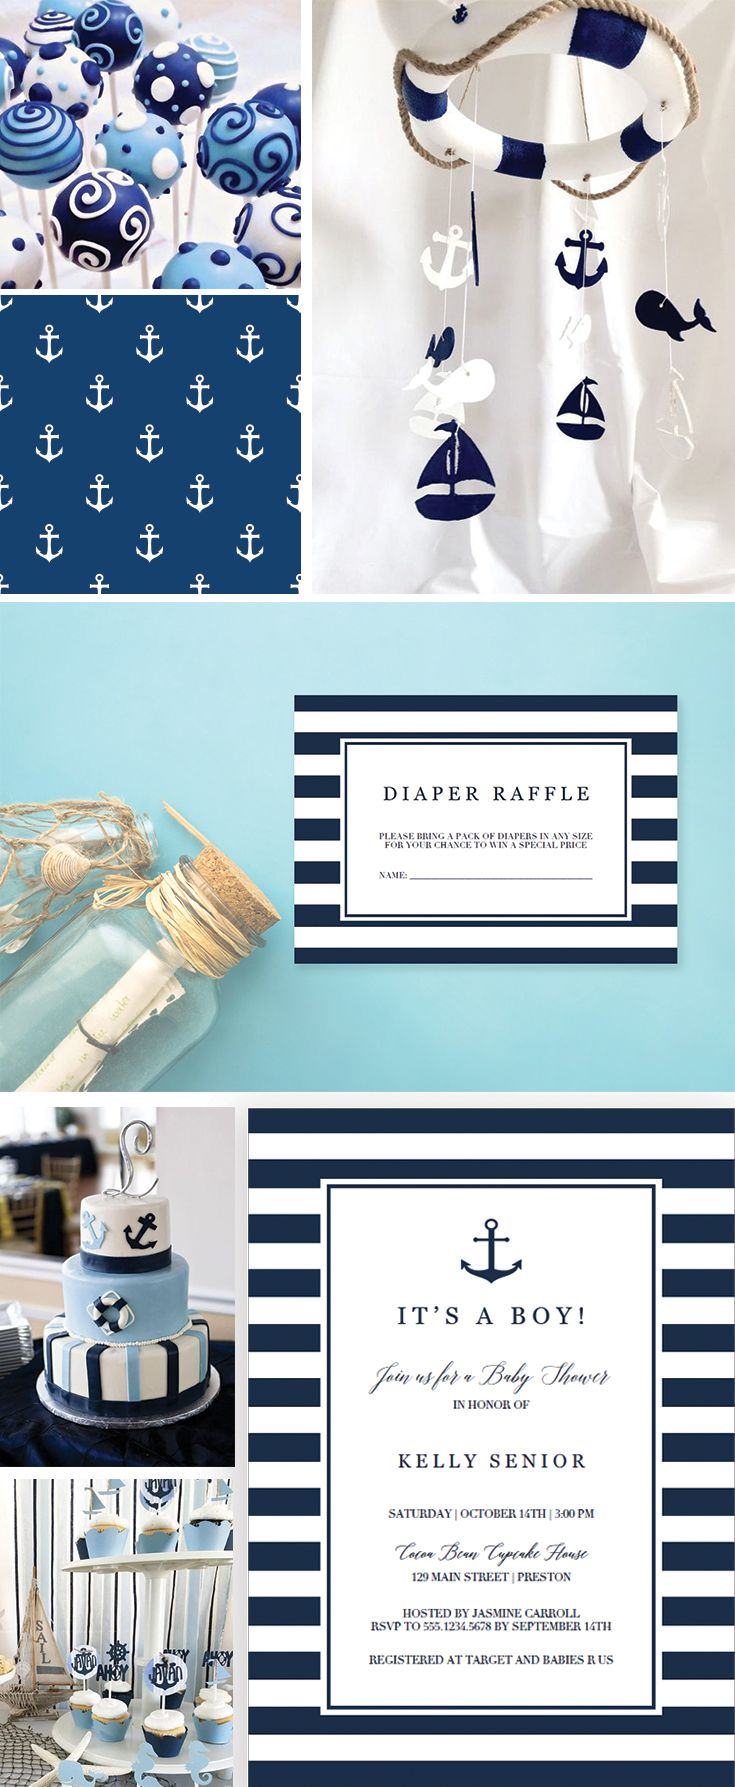 Nautical Baby Shower Boy Ideas by LittleSizzle. Printable Decorations and Invitations. Nautical Baby Shower Invites and Inserts. Make the perfect announcement of a baby shower with this nautical baby shower invitation set. Included in the set are the Invitation, a Diaper Raffle ticket and a Bring-a-Book request card. Personalize the items with your own words. Simply download, edit and print!